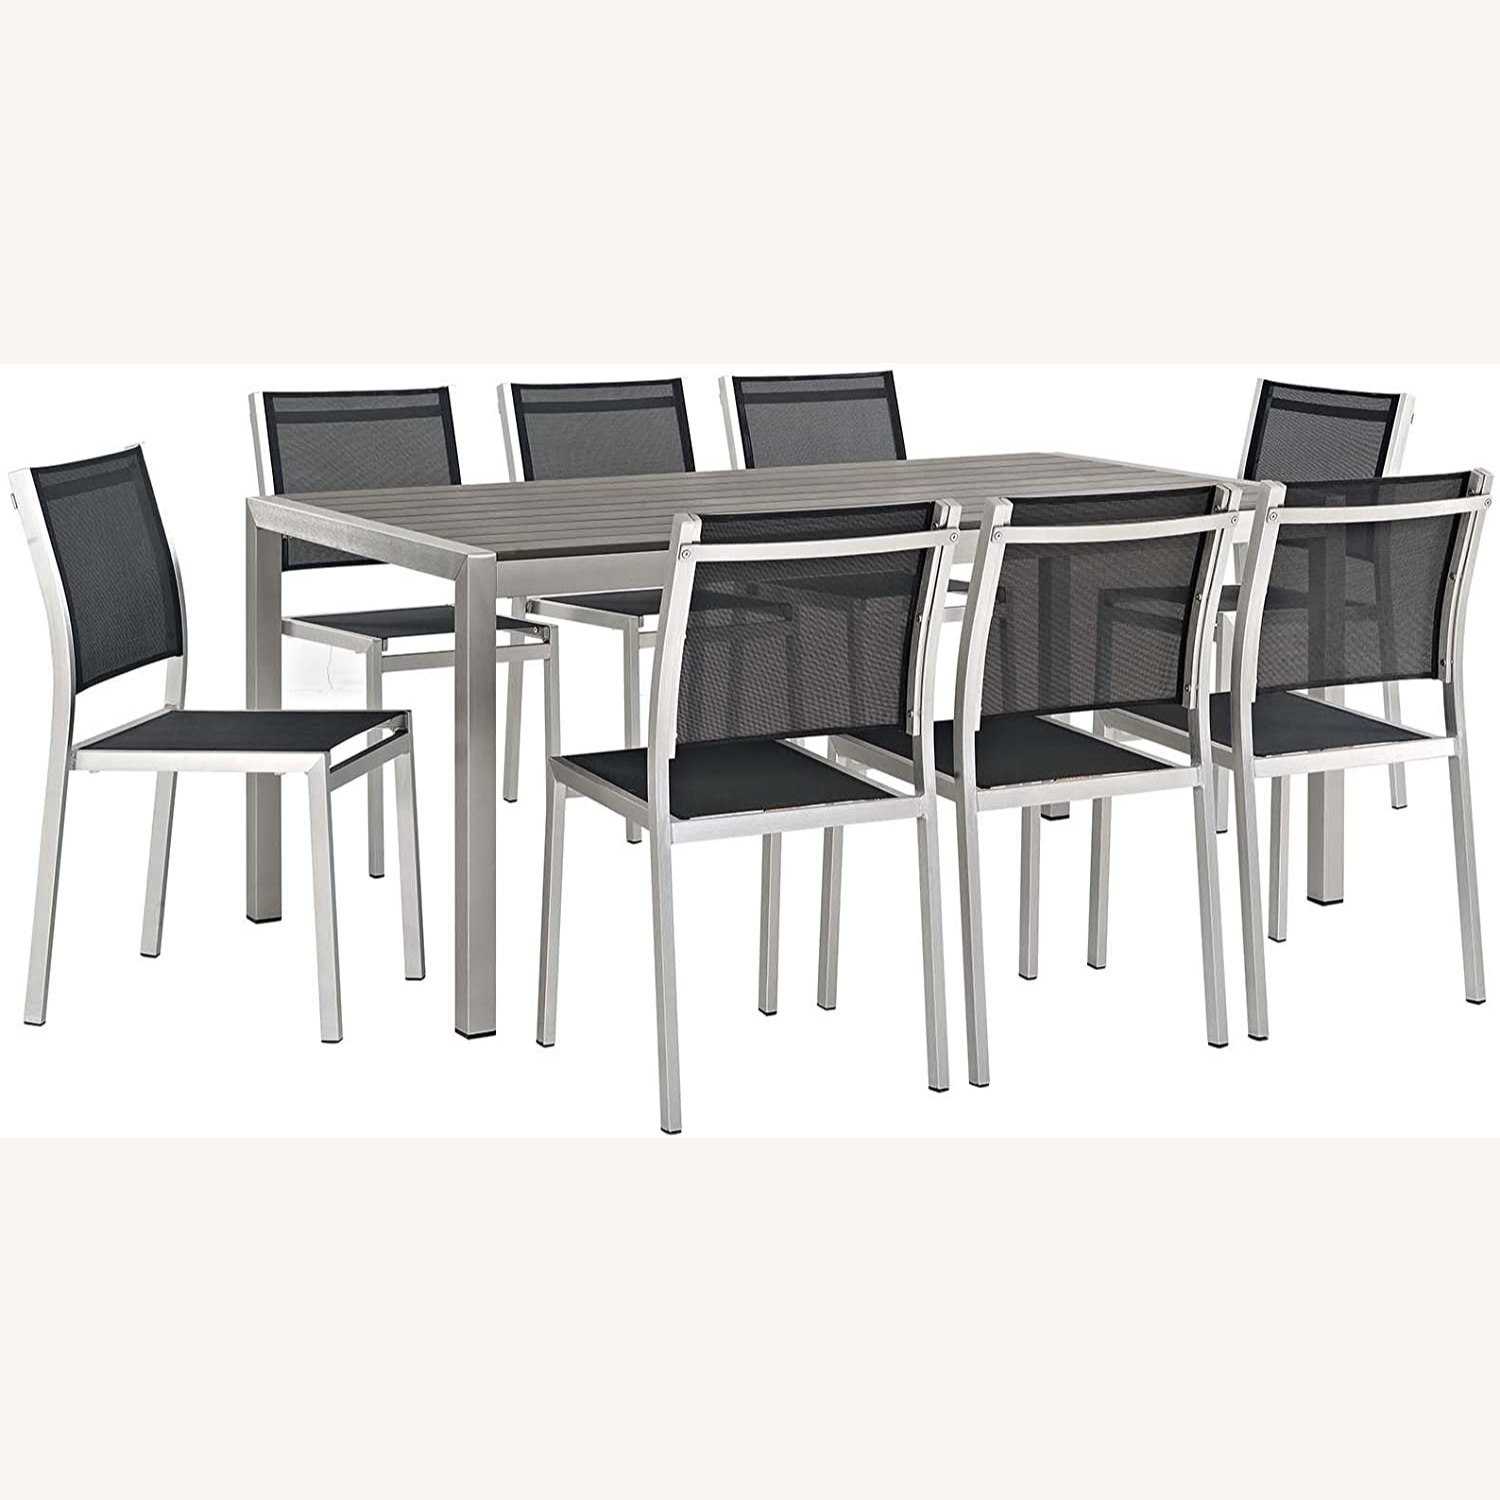 Modern 9-Piece Dining Set In Silver & Black - image-0